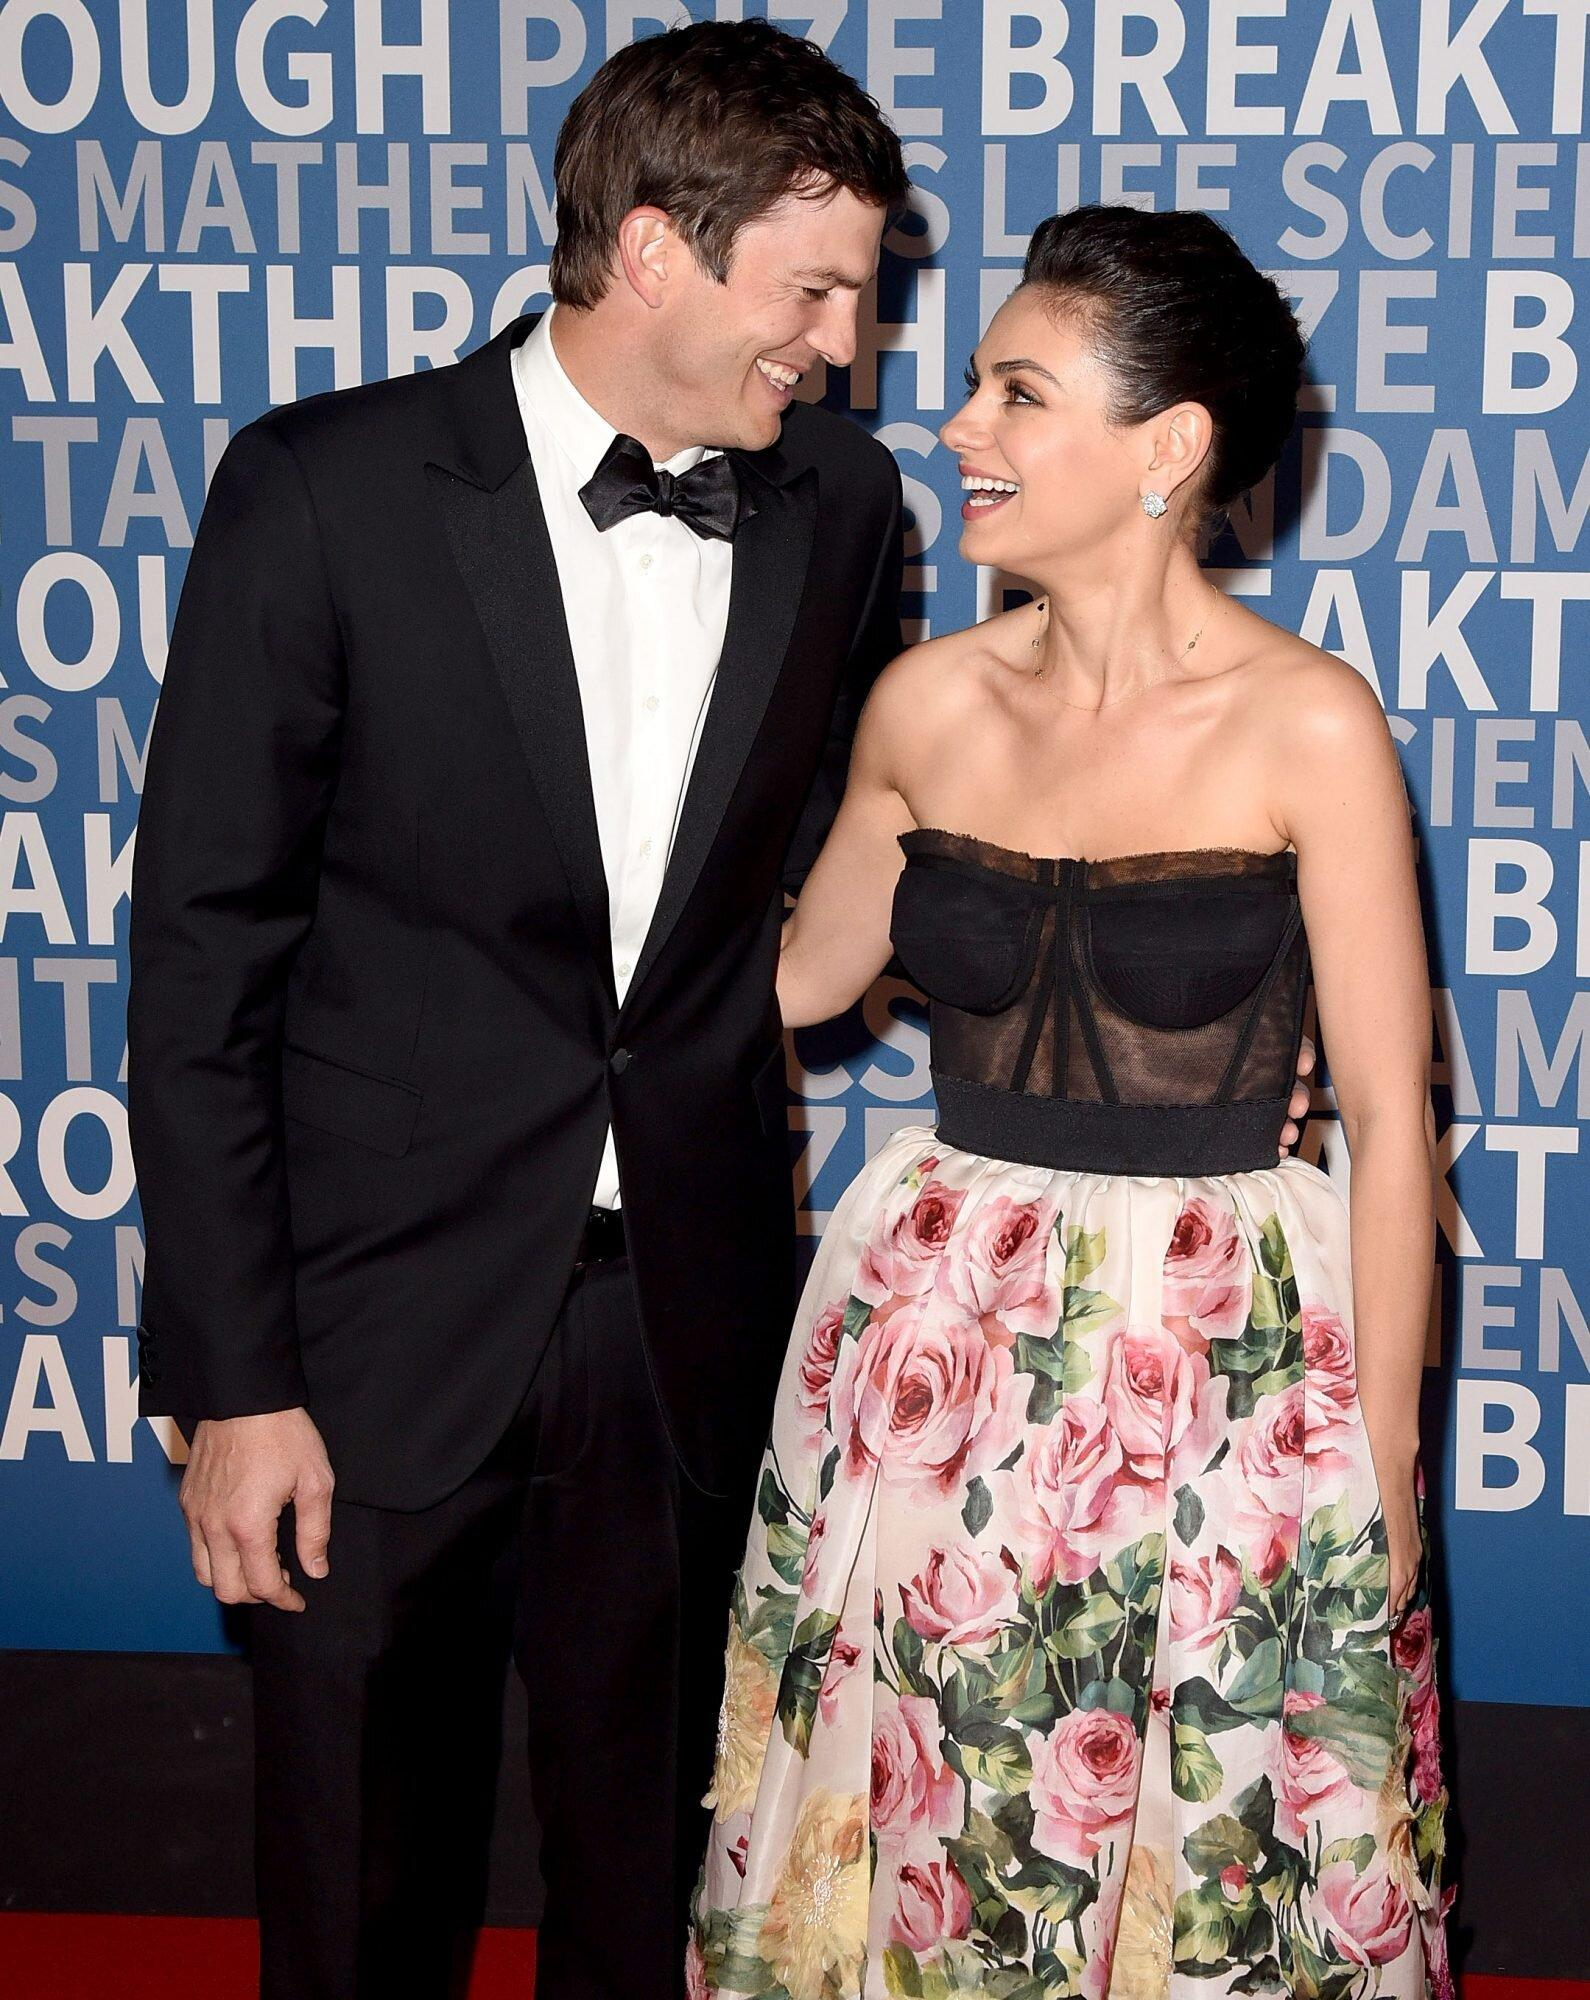 Mila Kunis Says Husband Ashton Kutcher Is 'Fantastic' at Homeschooling Their Kids